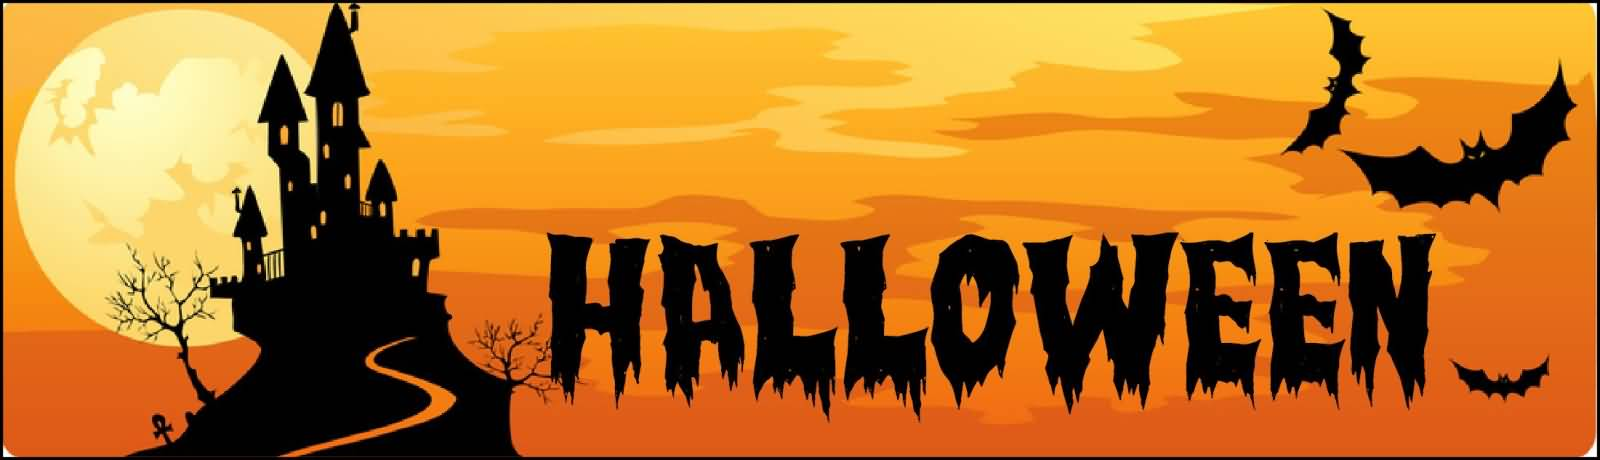 Halloween Wishes Facebook Cover Picture